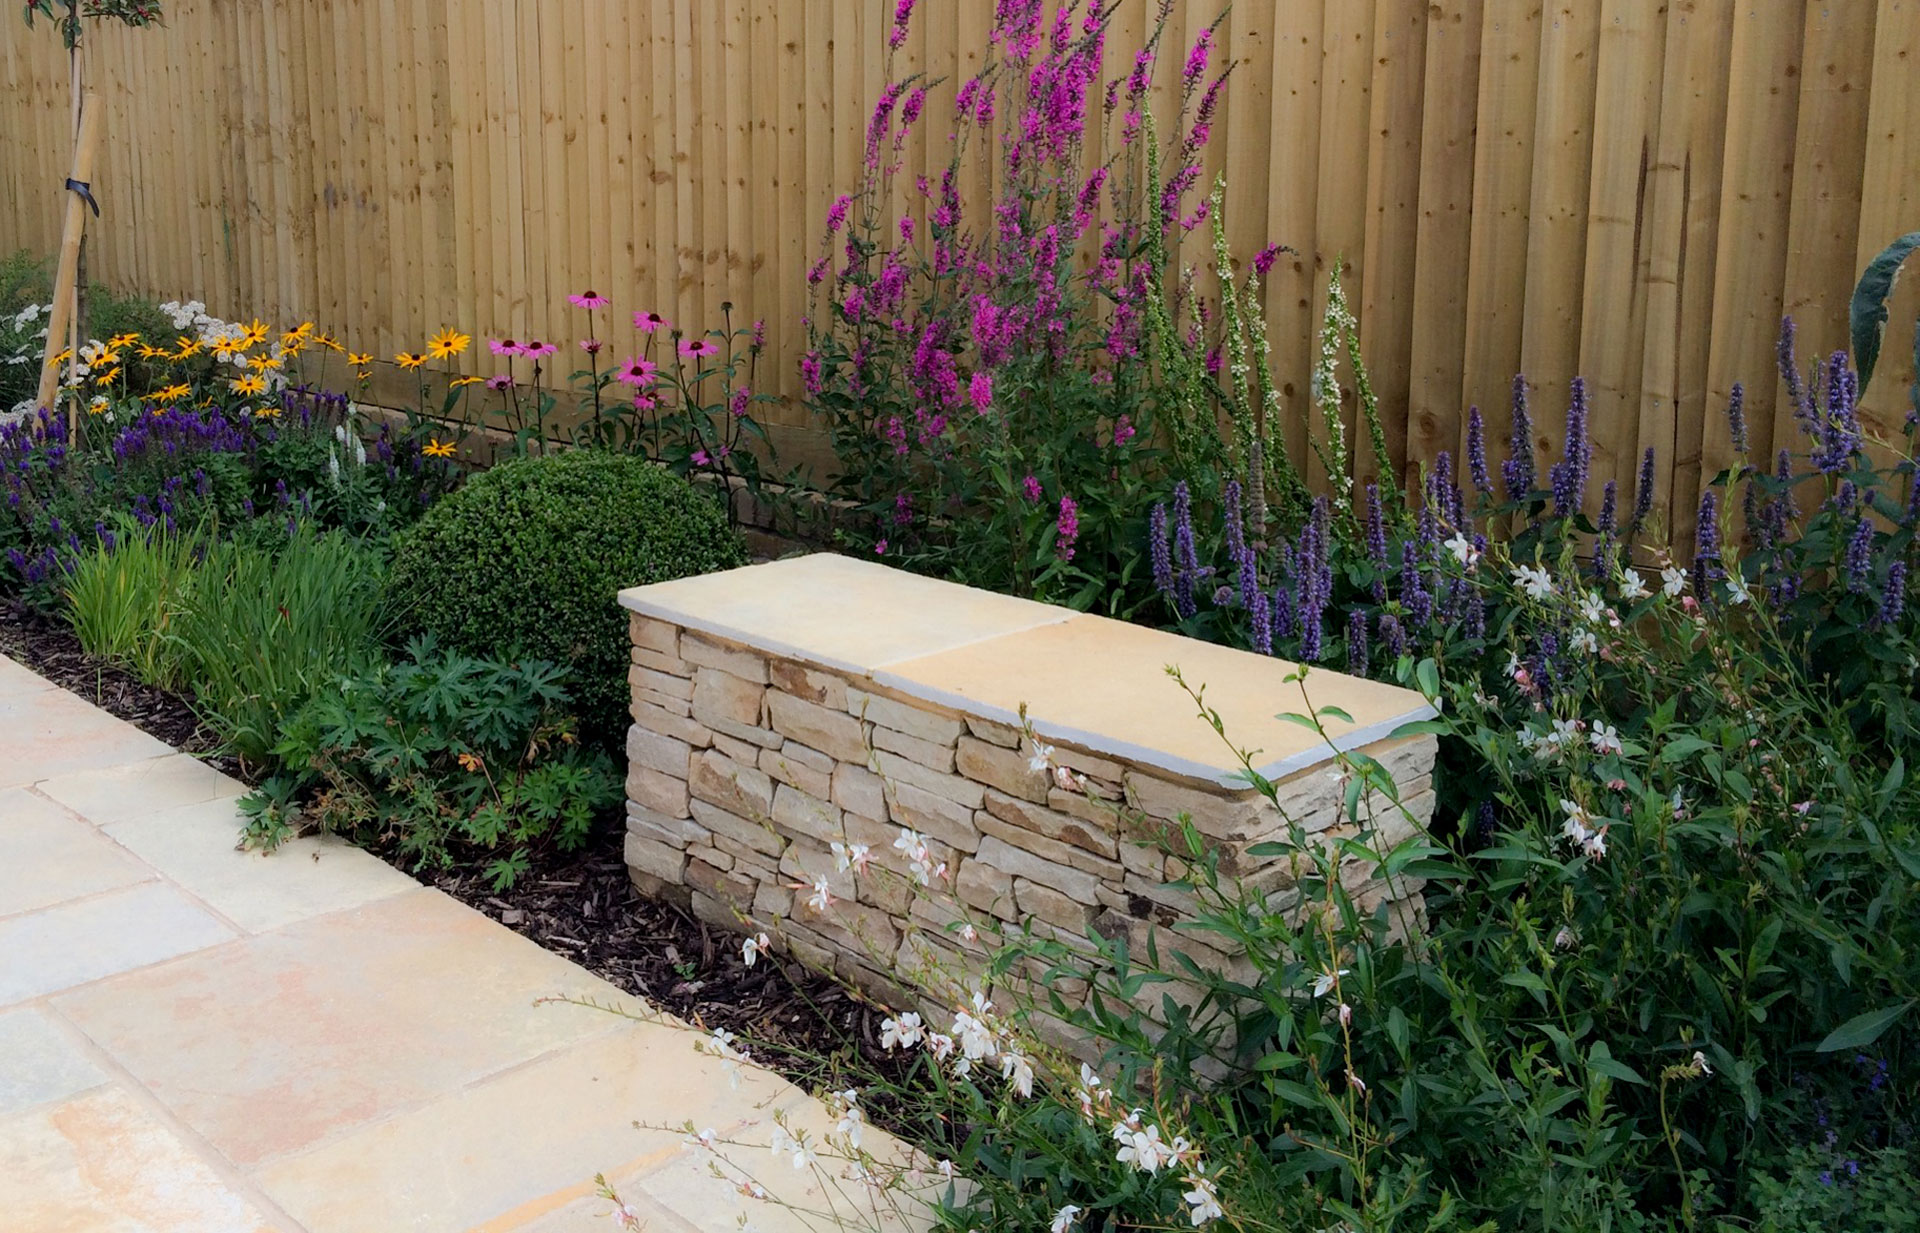 Stone Bench Surrounded By Flowers